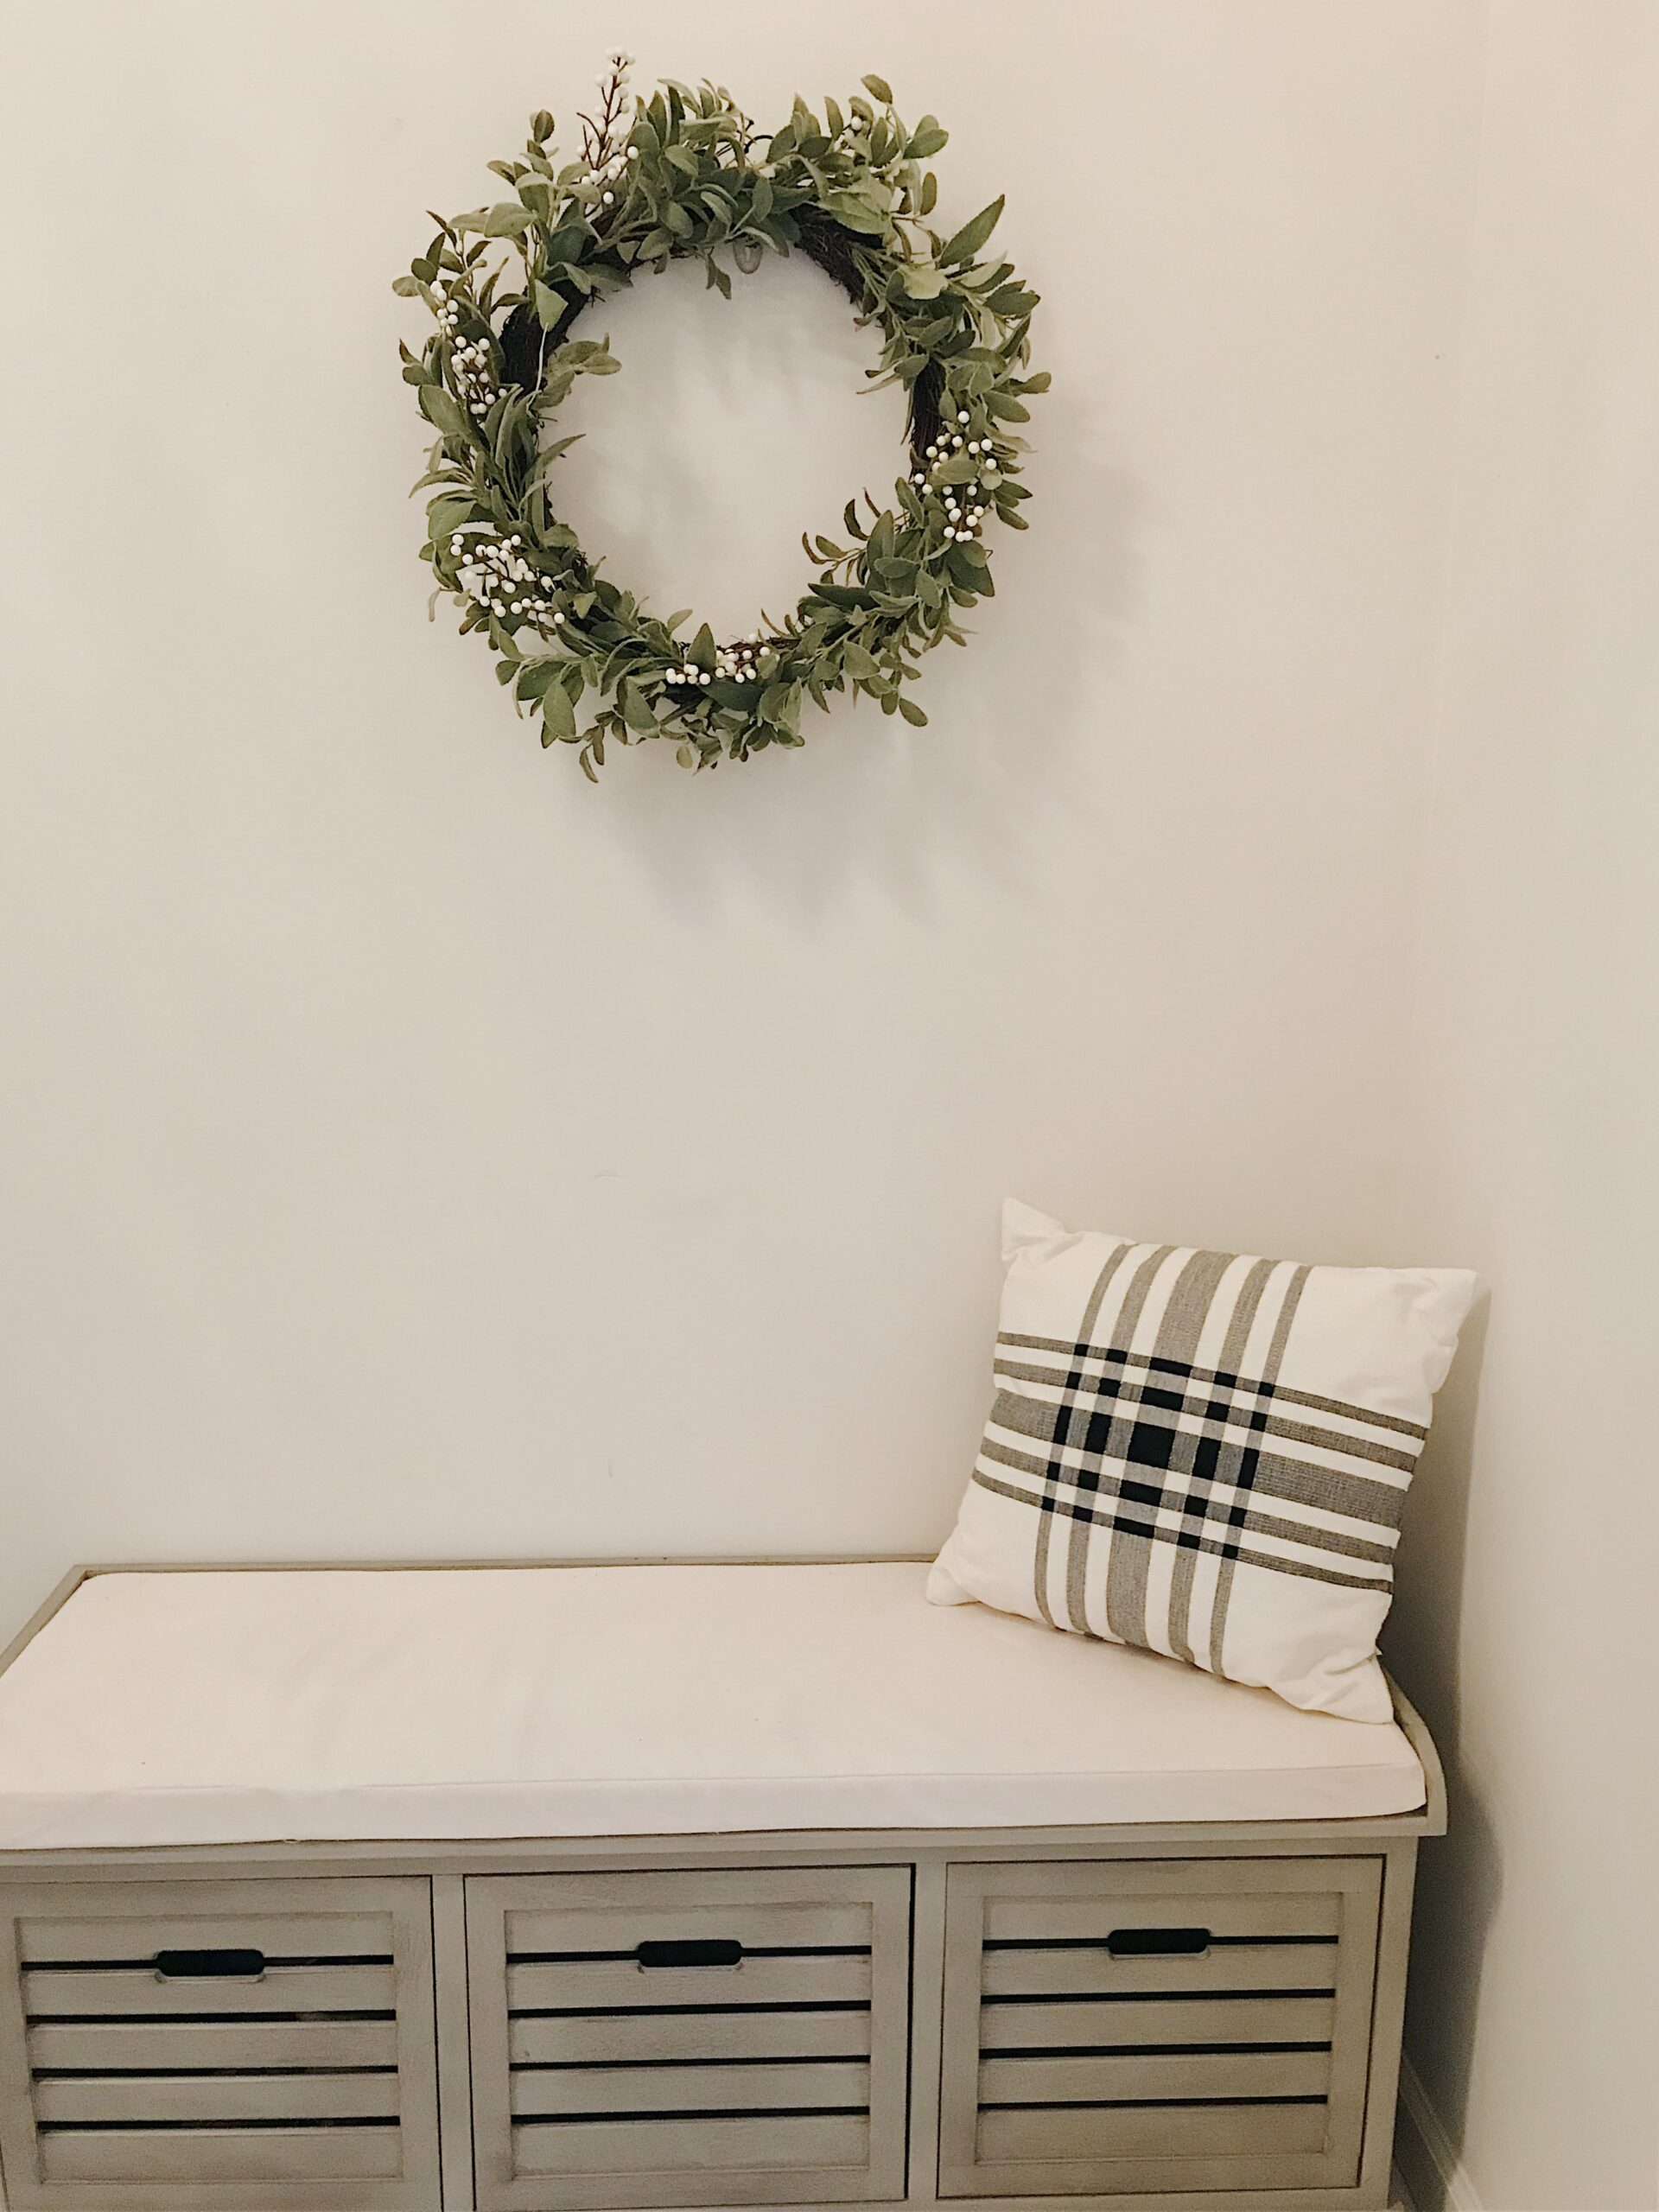 Mudroom bench wreath and plaid pillow